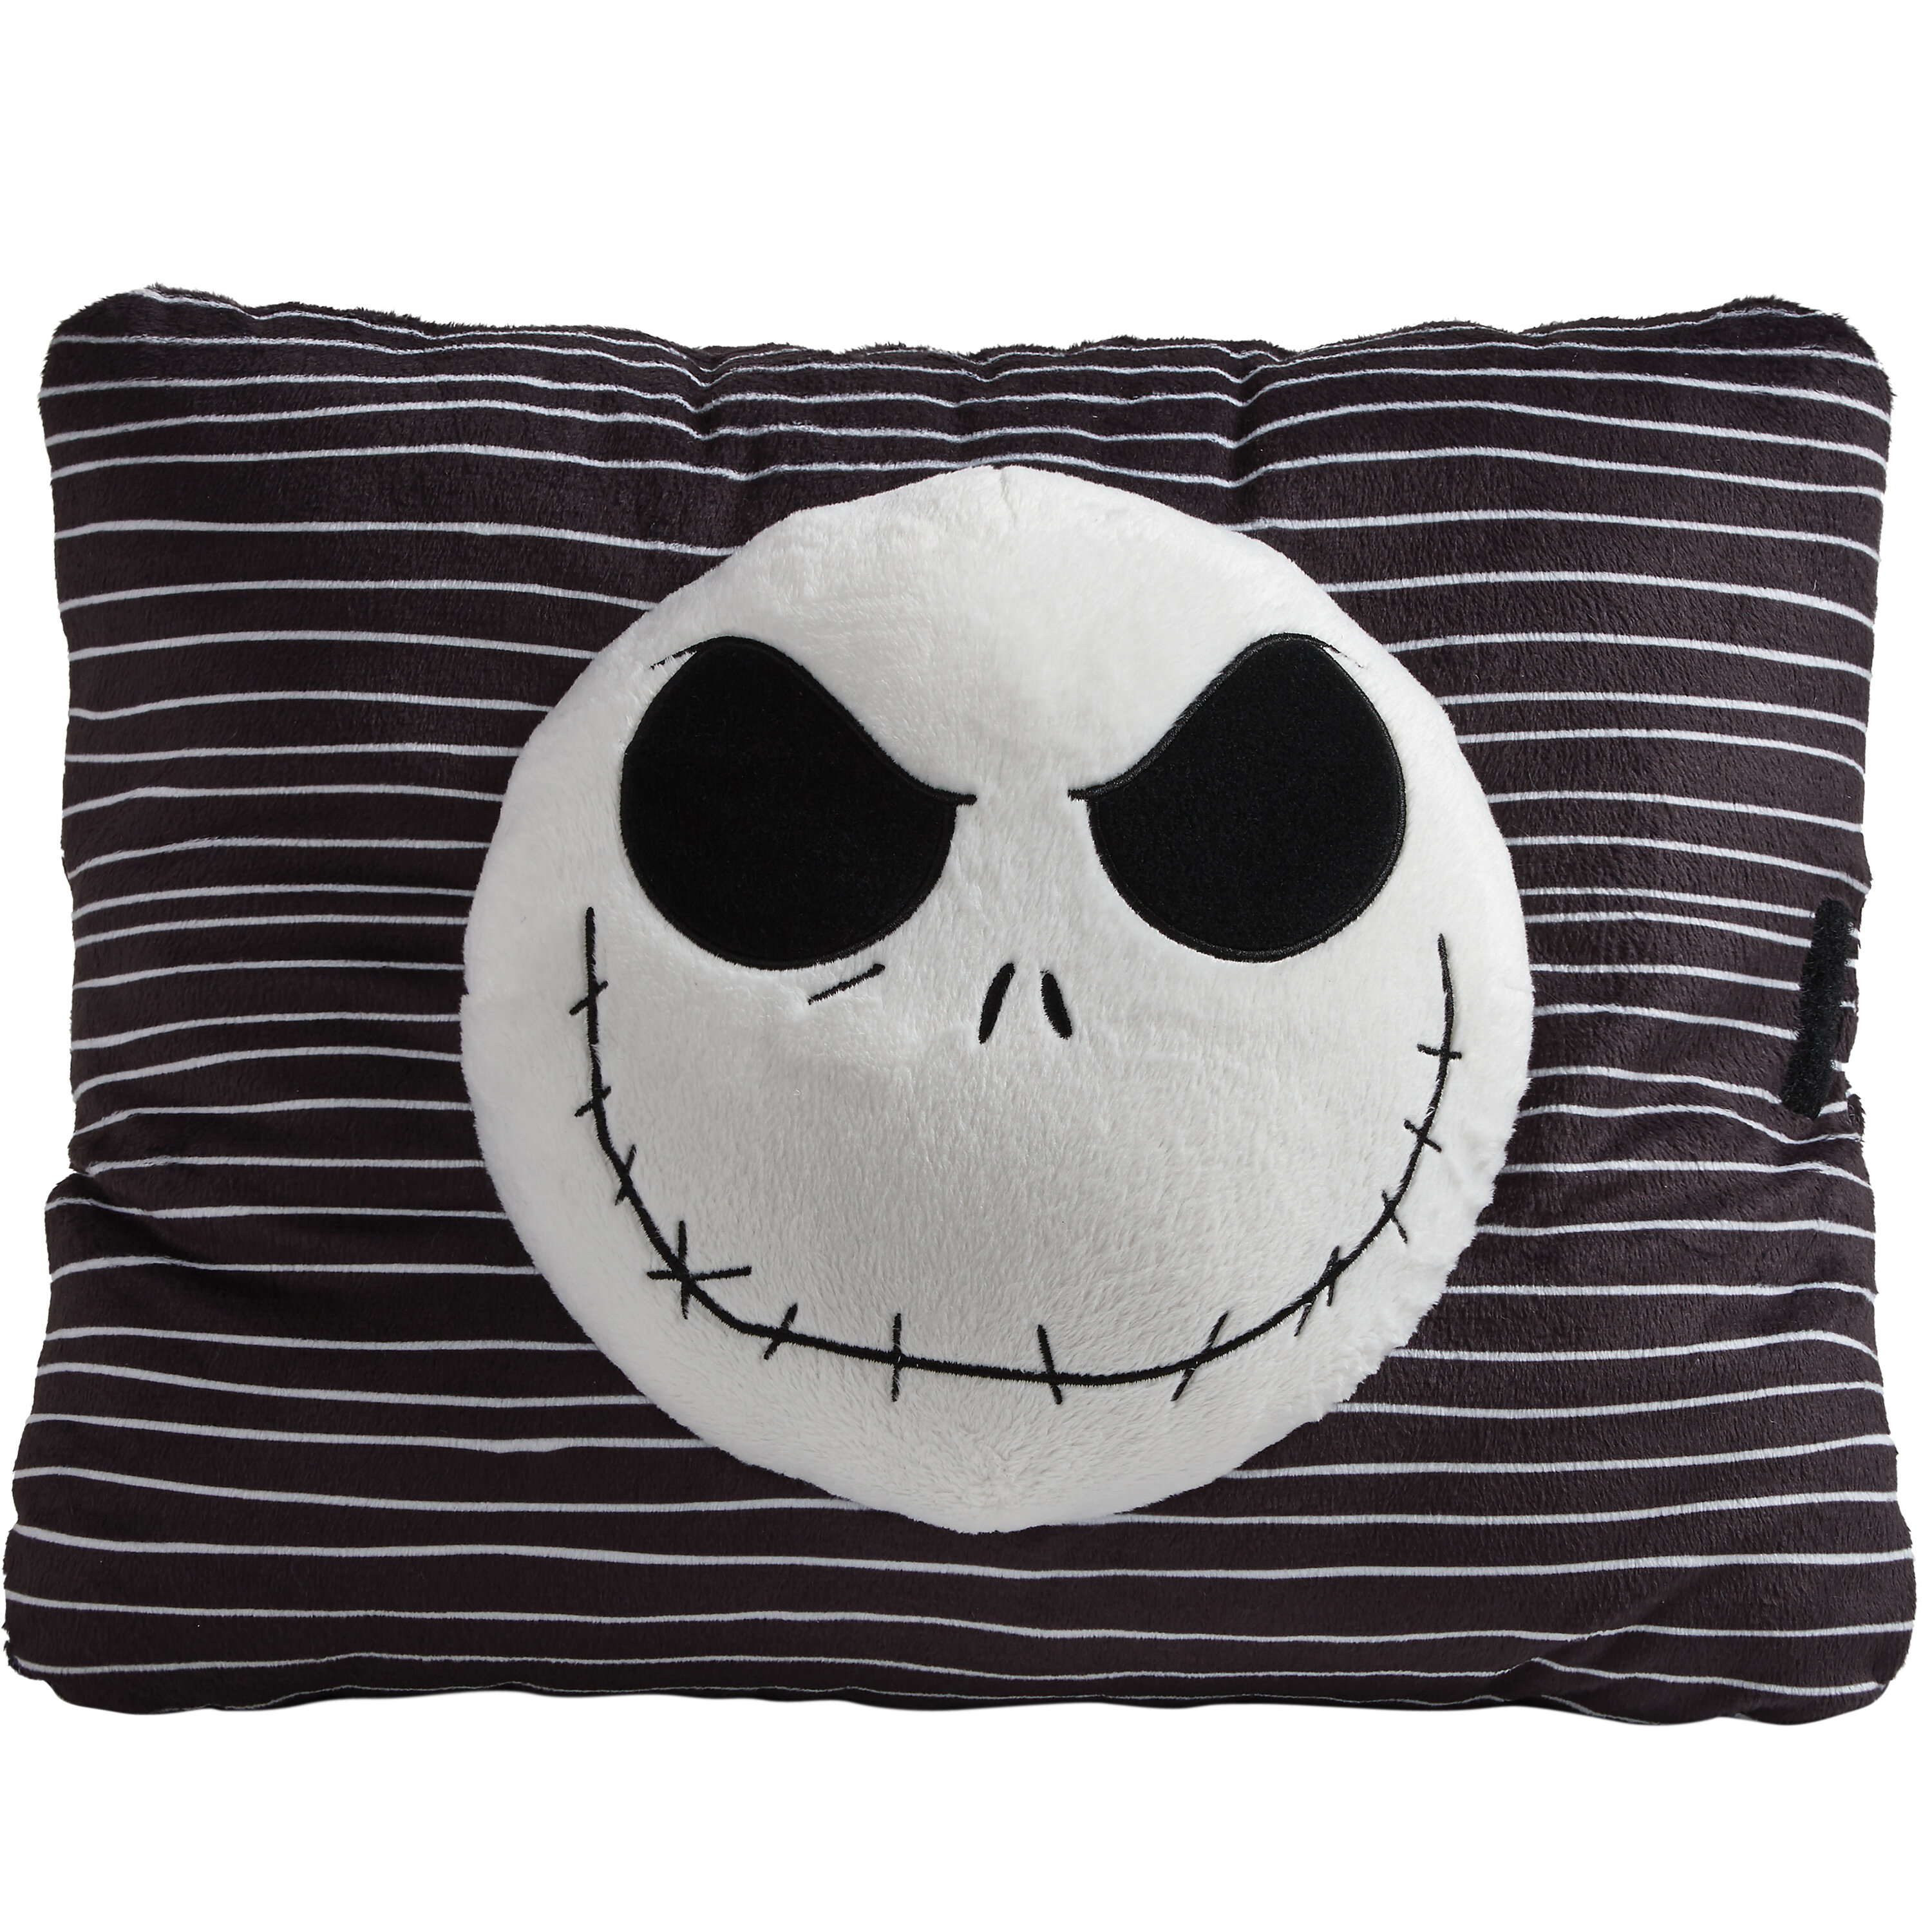 Nightmare before Christmas fleece blanket, Jack, black. Nightmarke ...